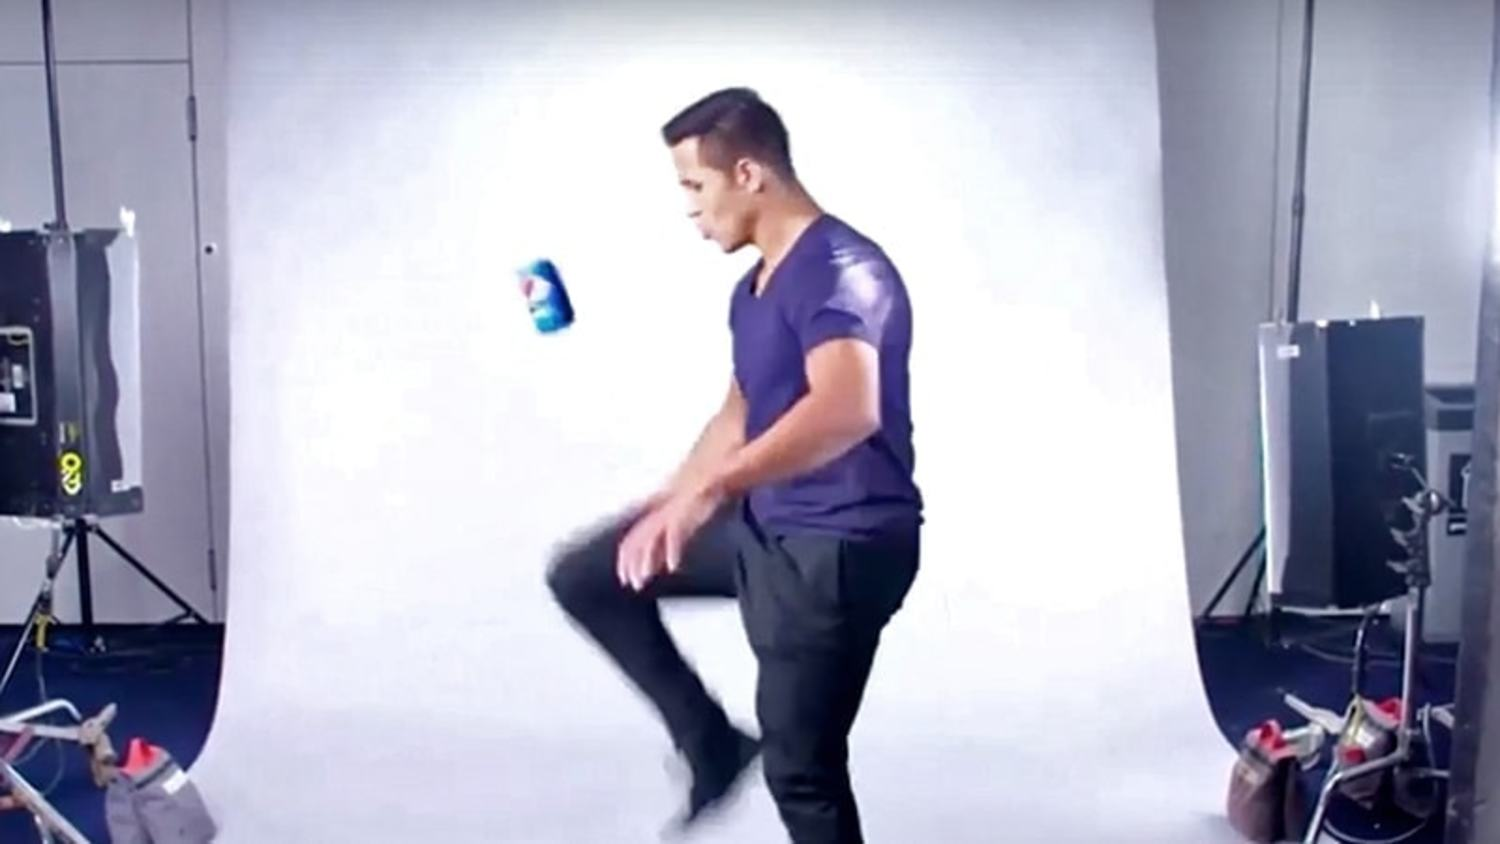 Aguero, Sanchez and De Gea's beautiful keepy-ups with a Pepsi can